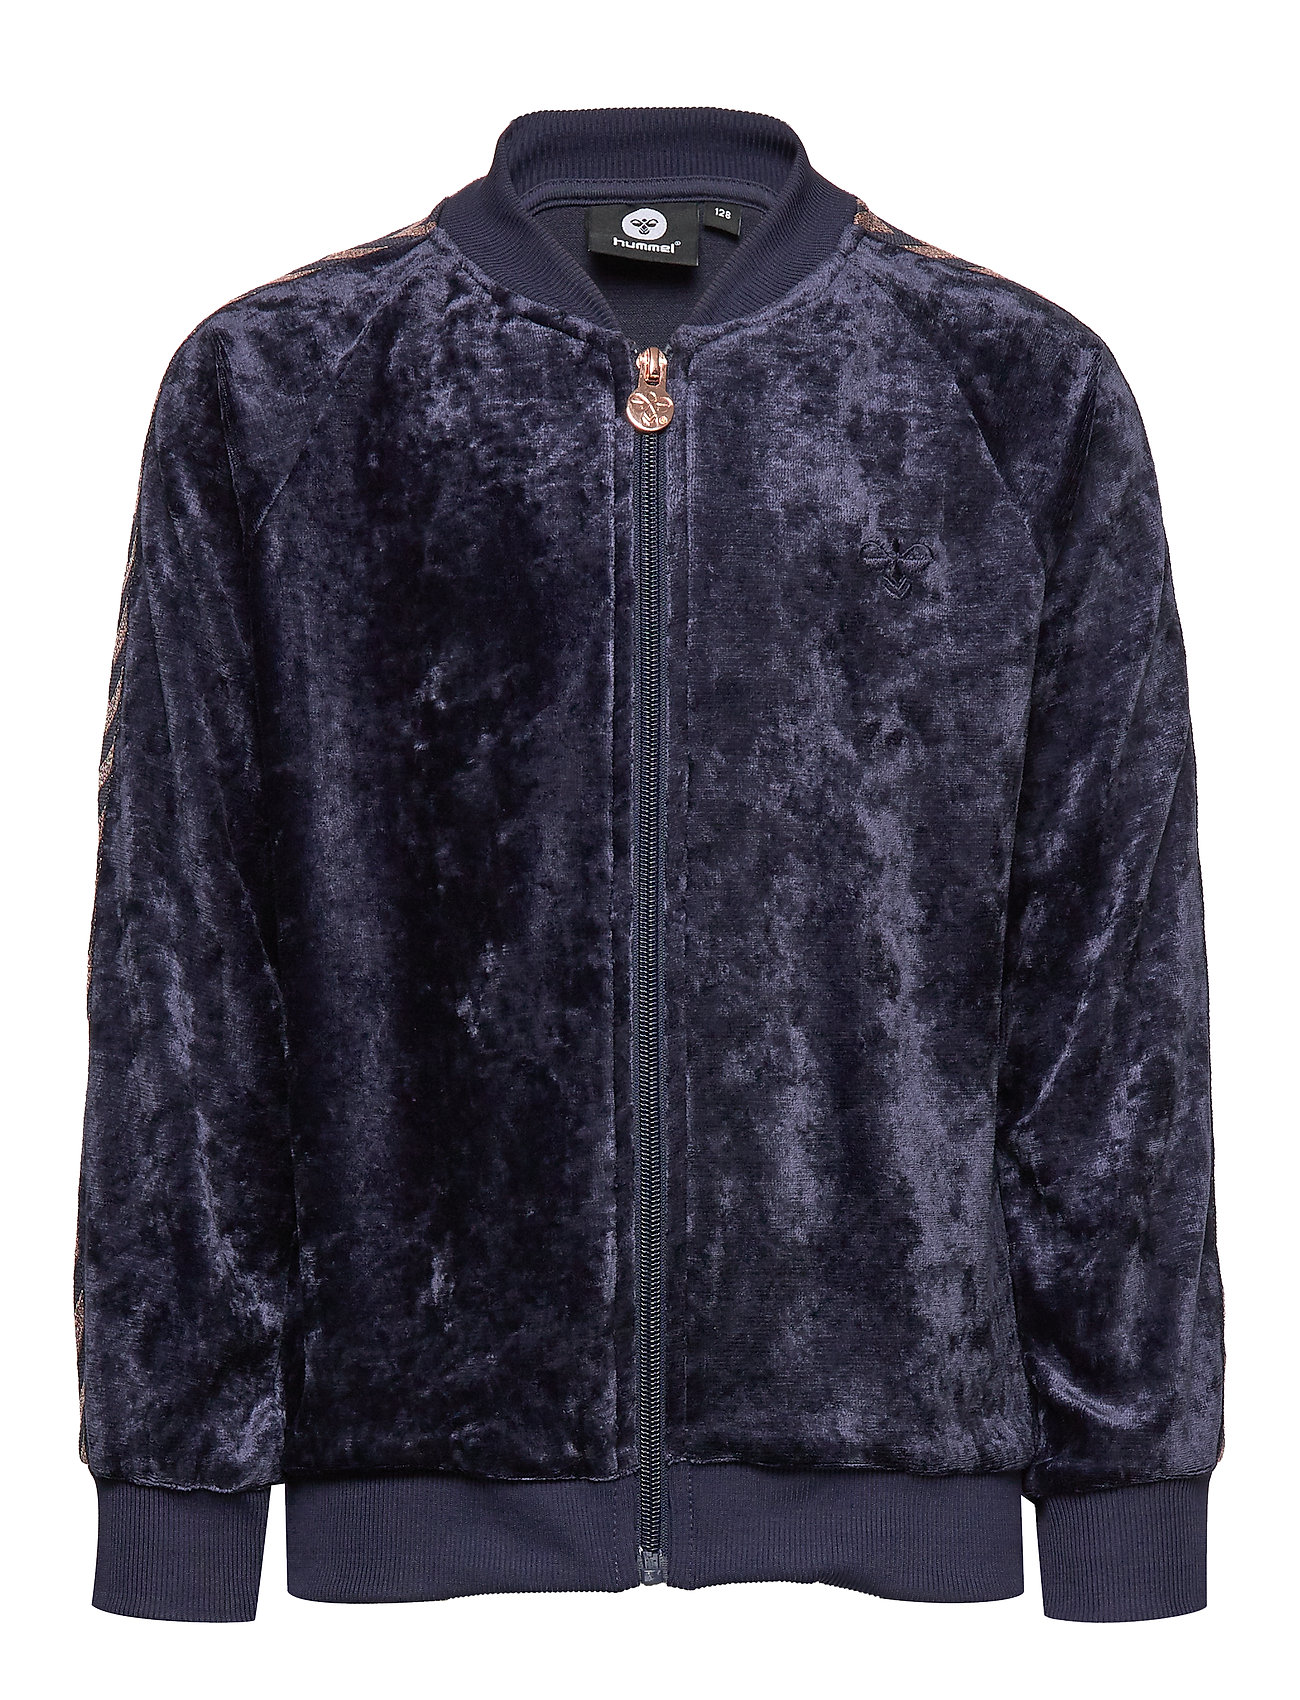 Hummel hmlLYRA ZIP JACKET - NIGHT SKY